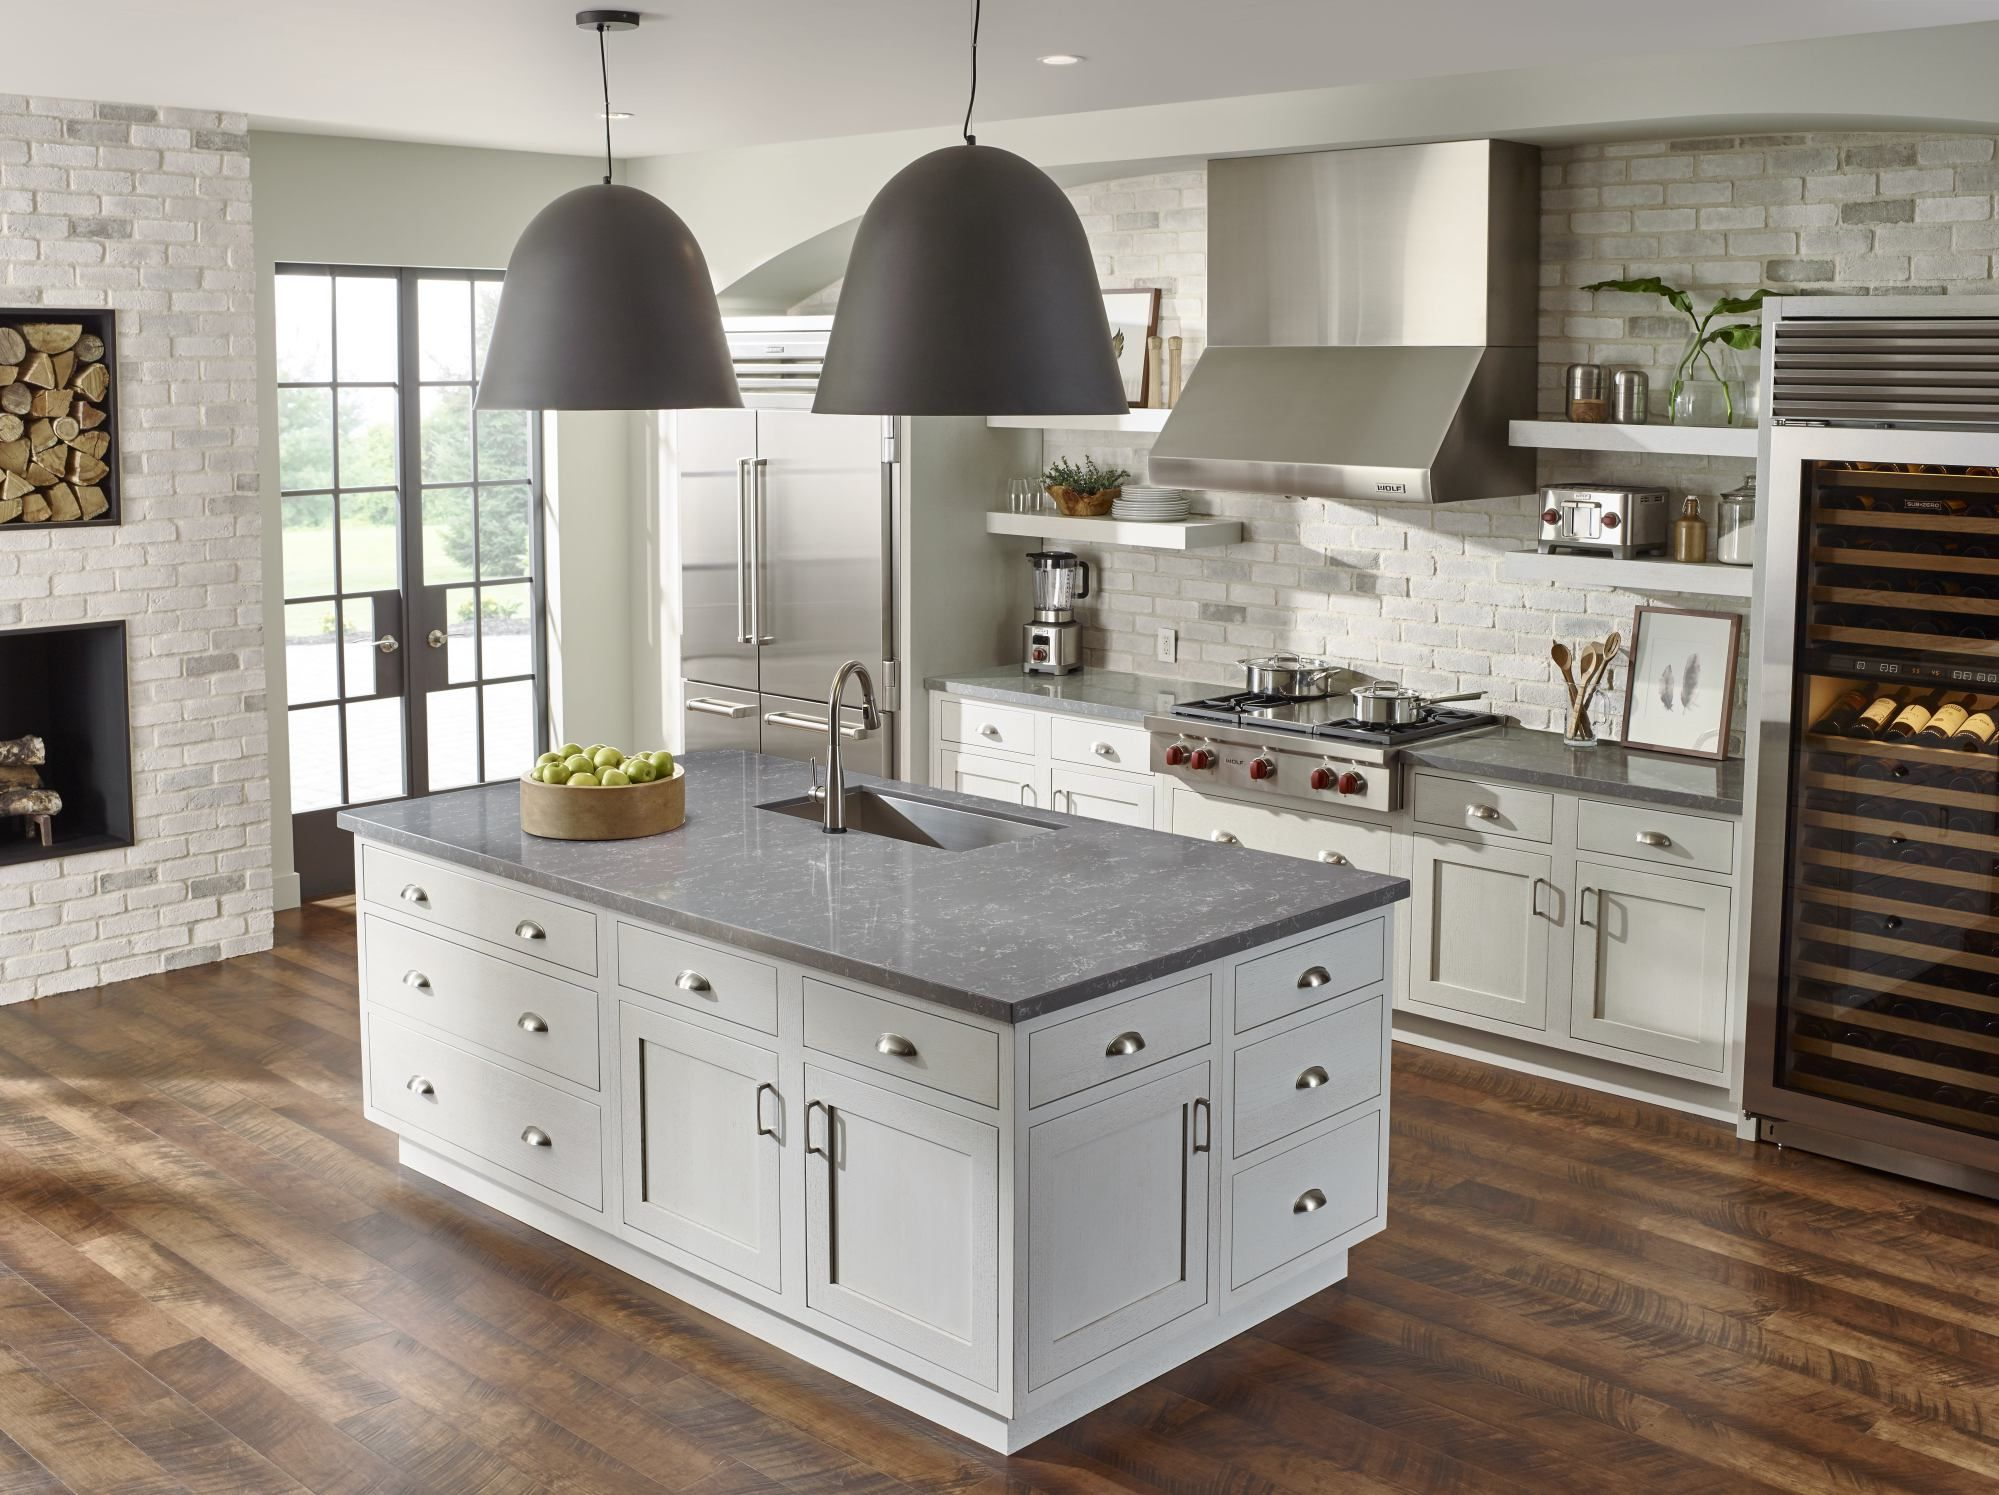 corian kitchen countertops Corian Colors Styling Kitchen Counters